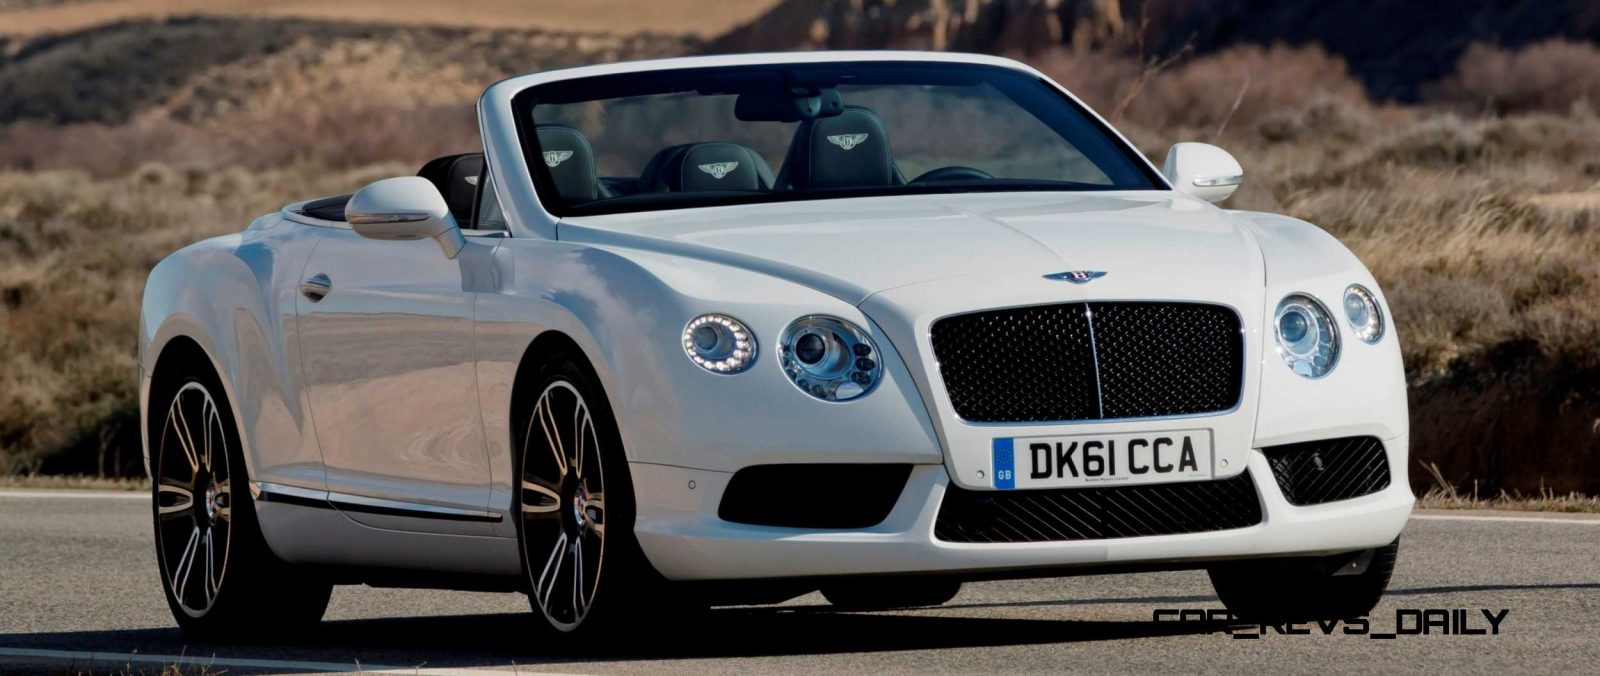 carrevsdaily 2014 bentley continental gtc v8 and v8 s 33. Cars Review. Best American Auto & Cars Review